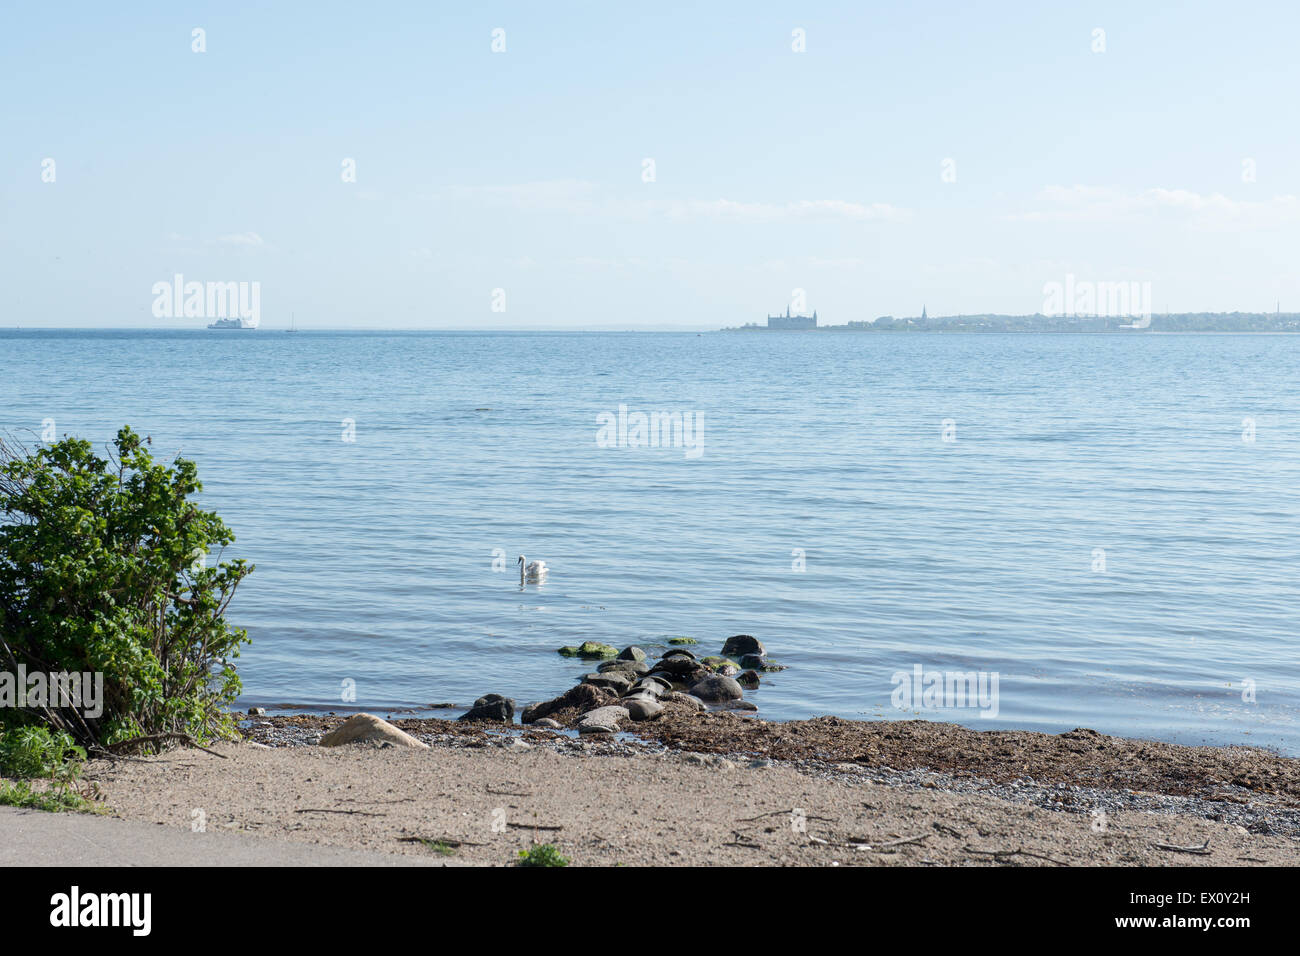 Landscape with the baltic sea and Kronborg castle as seen from Sweden Stock Photo